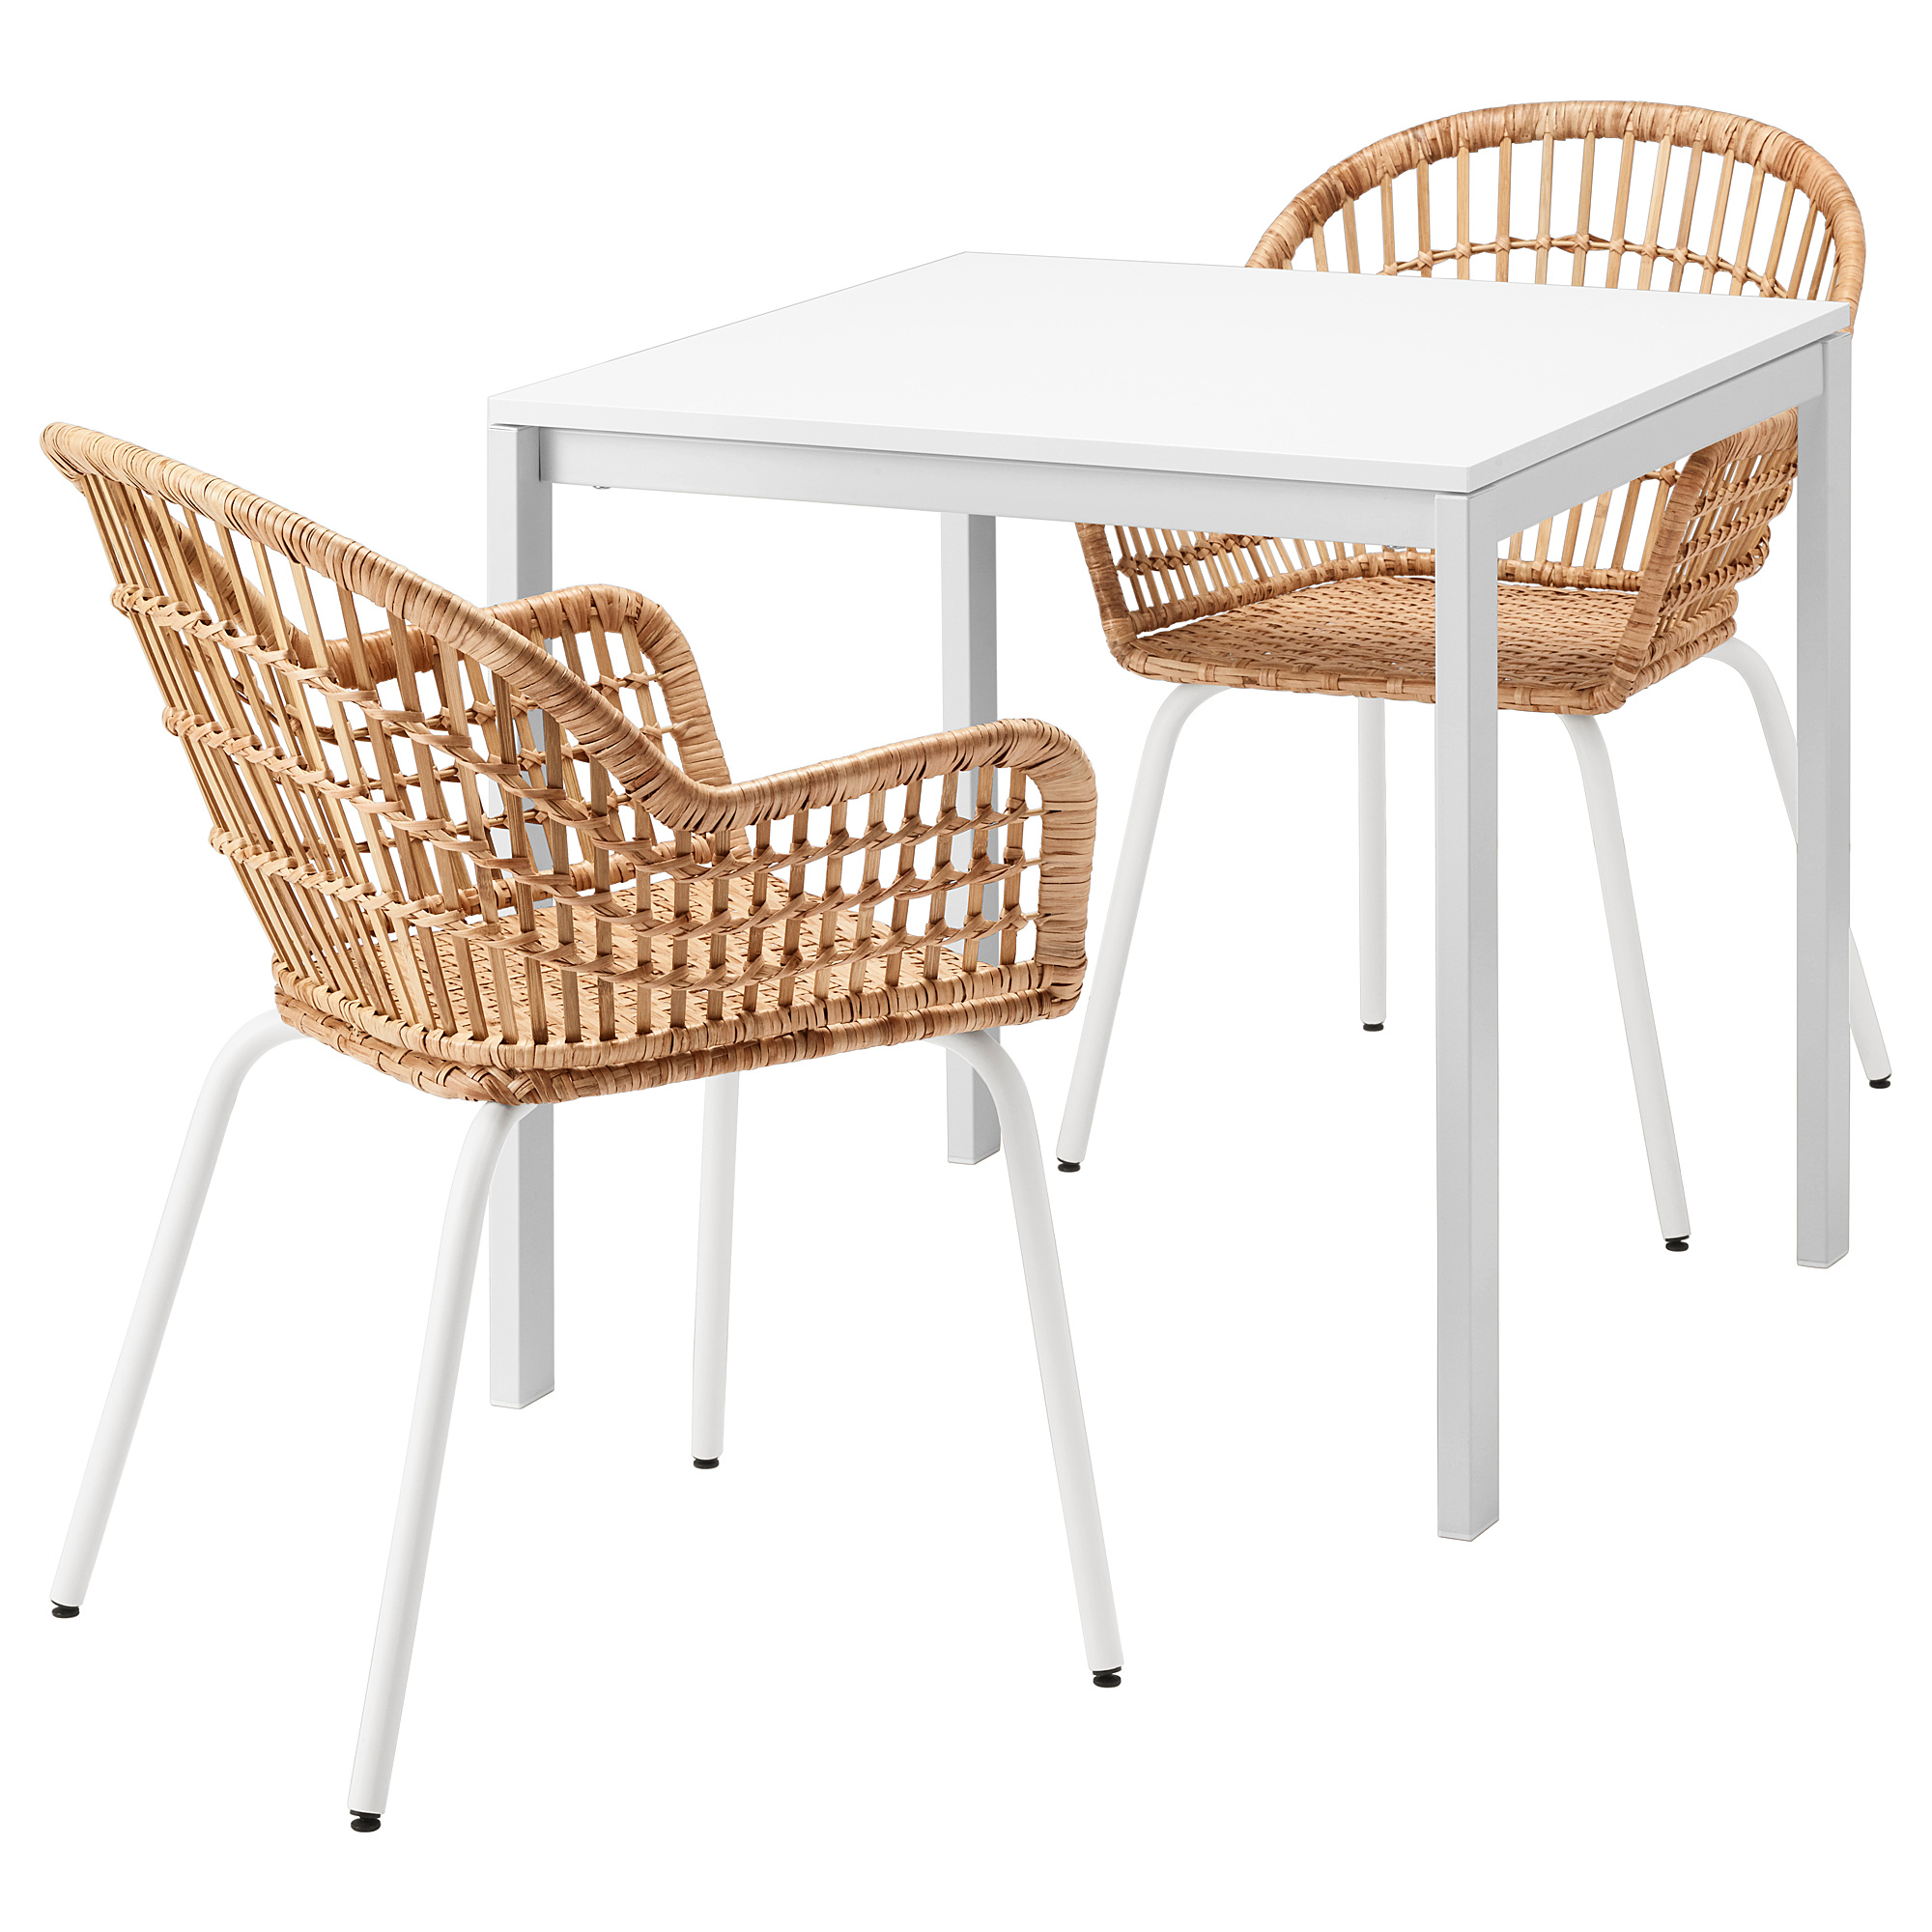 Melltorp Nilsove Table And 2 Chairs White Rattan White Ikea Hong Kong And Macau